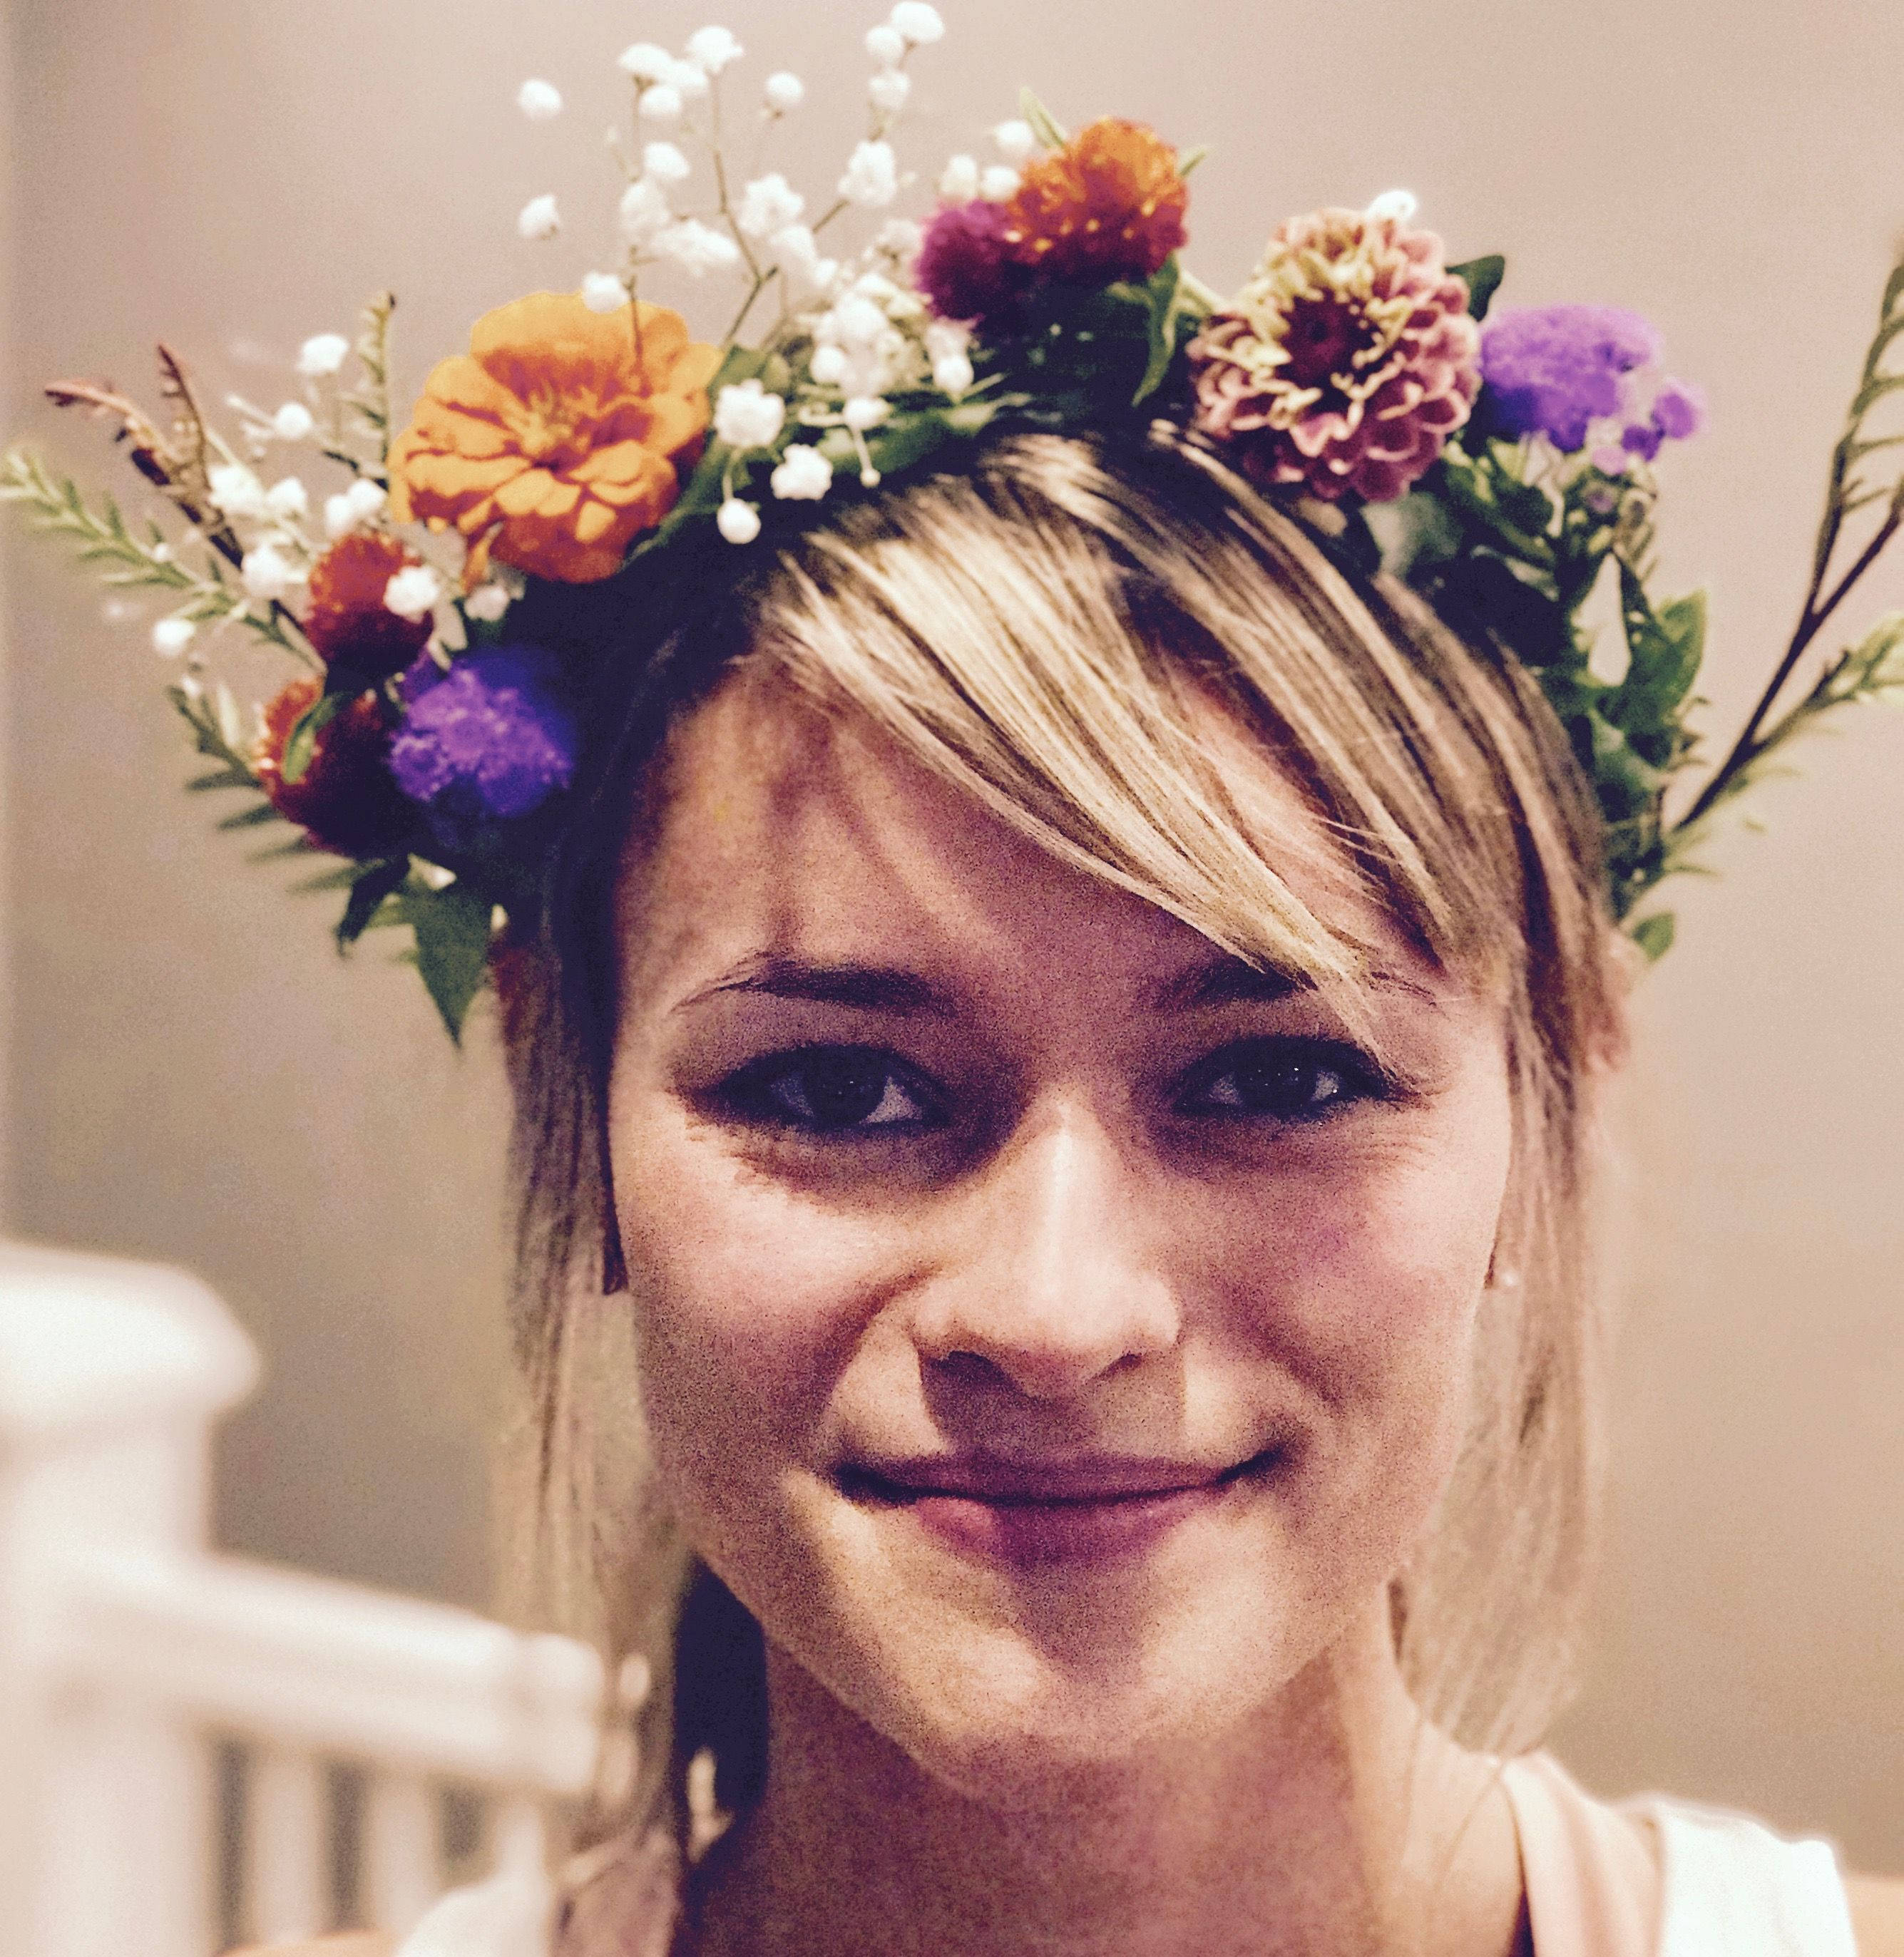 What to expect from a charleston bachelorette flower crown party boho flower crowns made from real flowers from local flower farmers izmirmasajfo